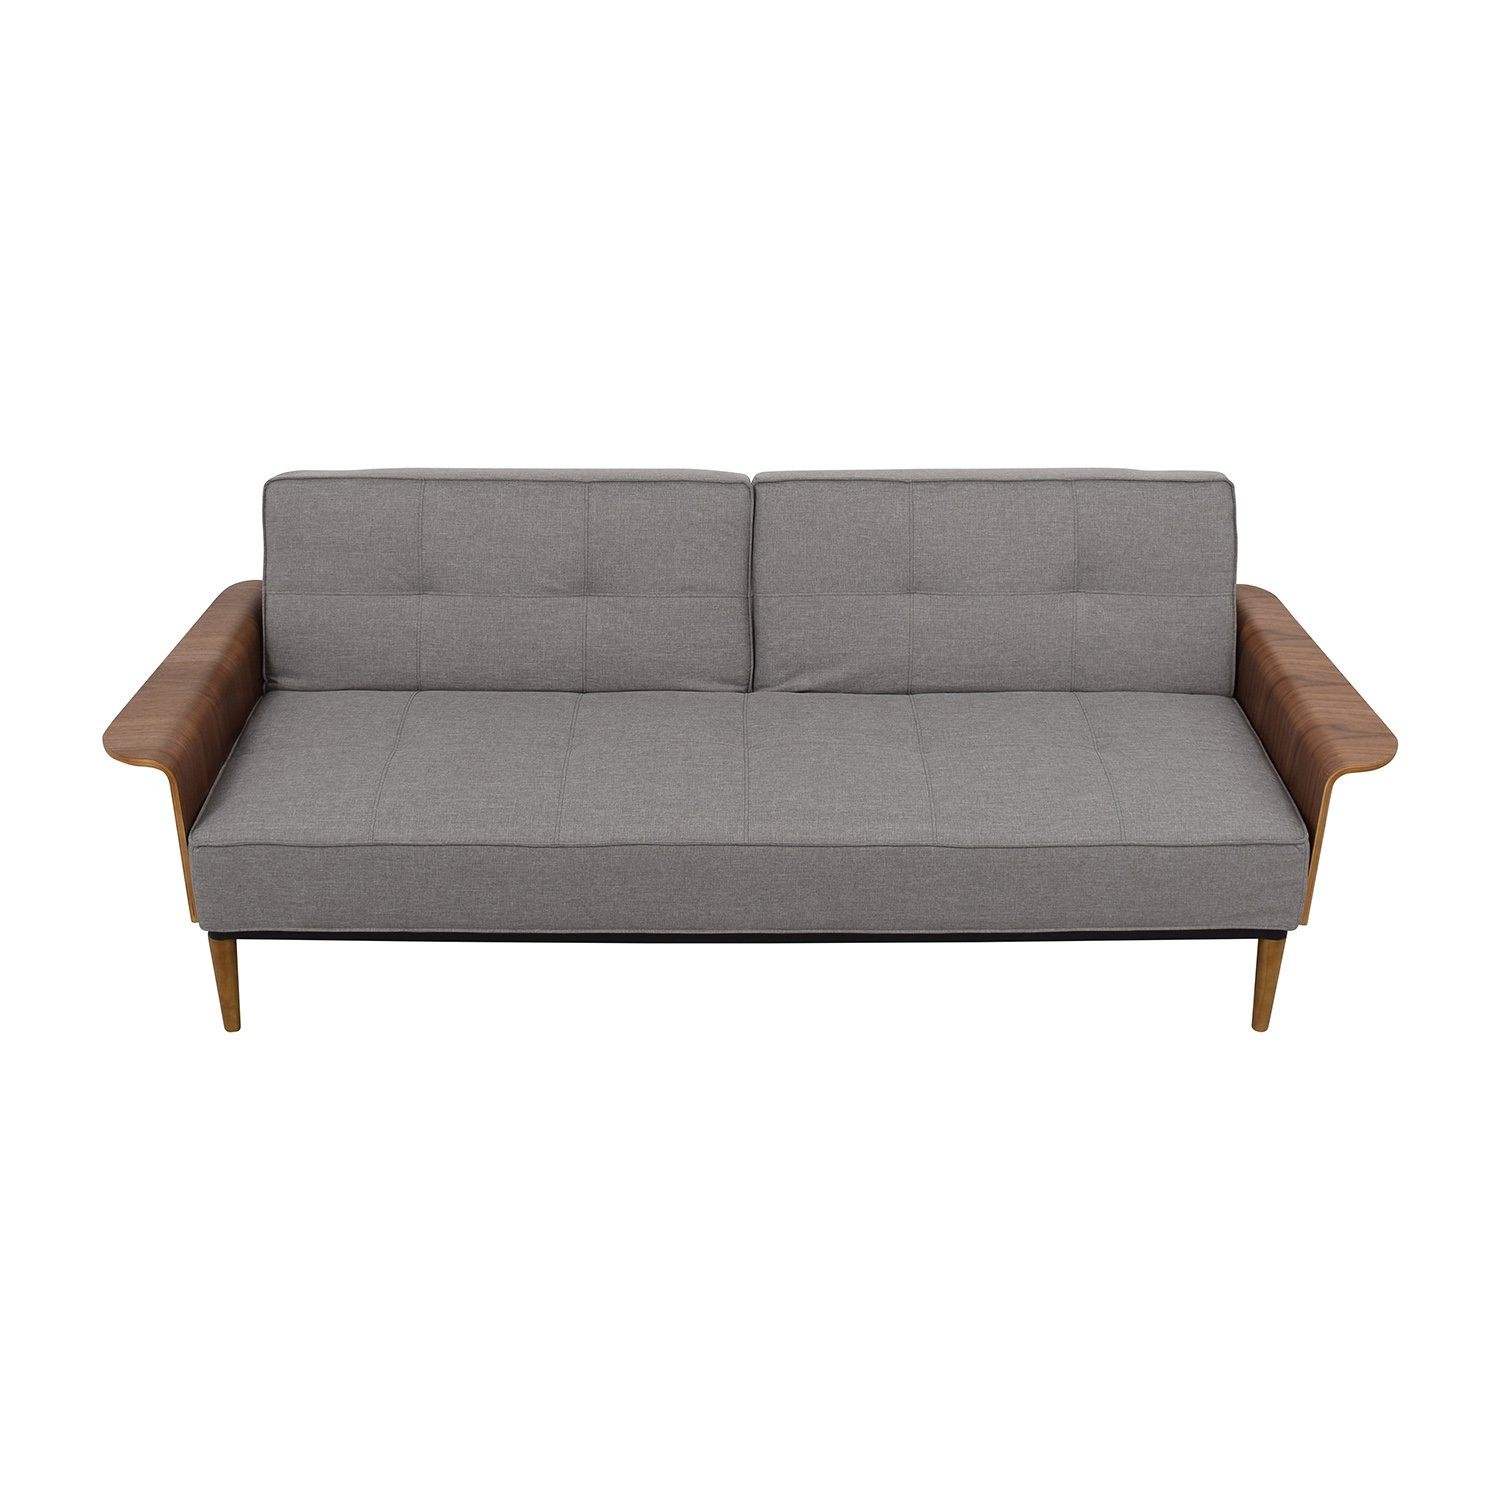 InMod InMod Bjorg Tufted Light Grey  Sofabed second hand